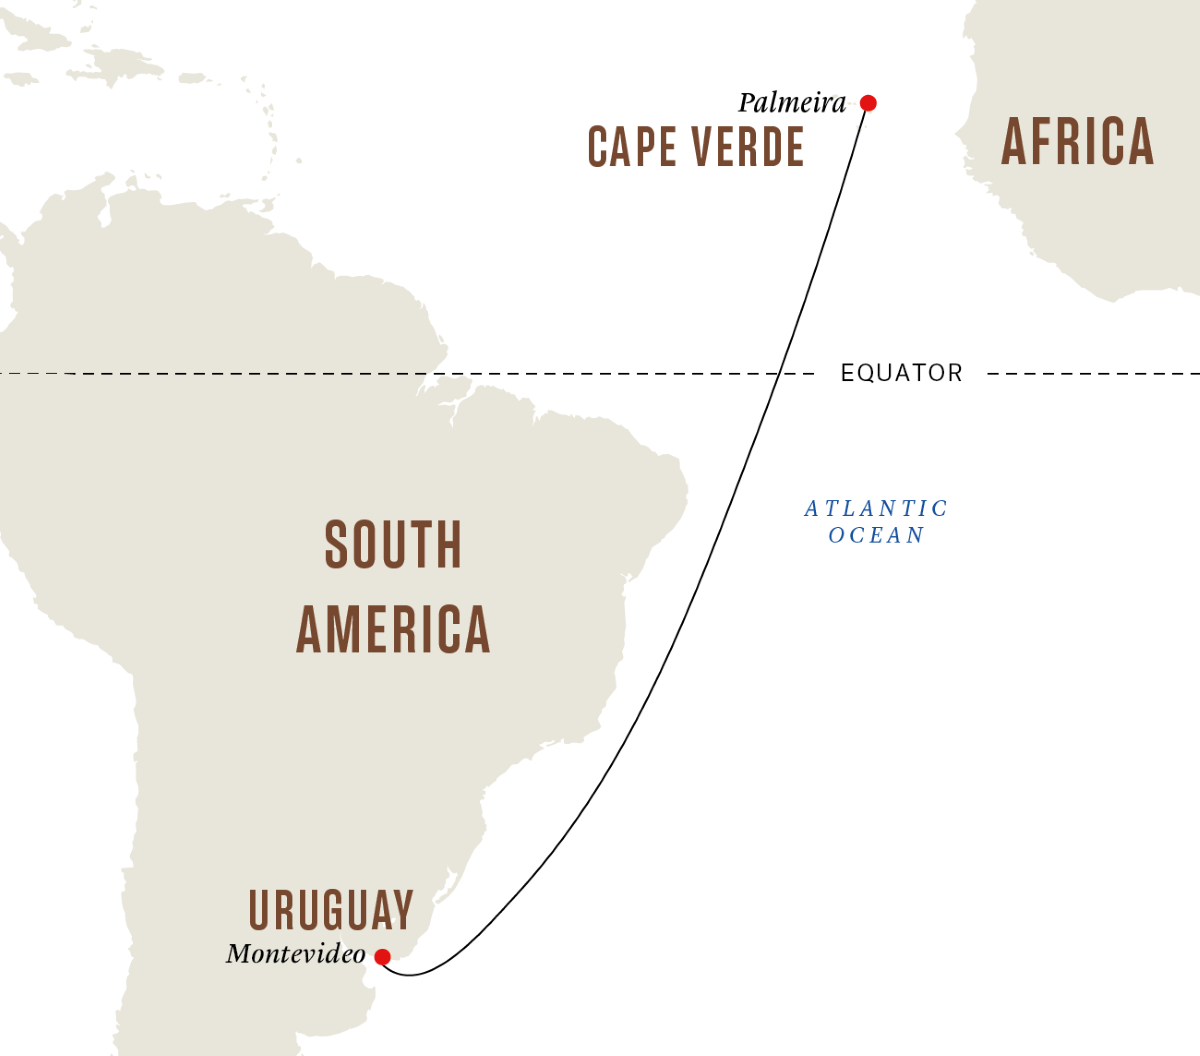 From Montevideo to Cape Verde